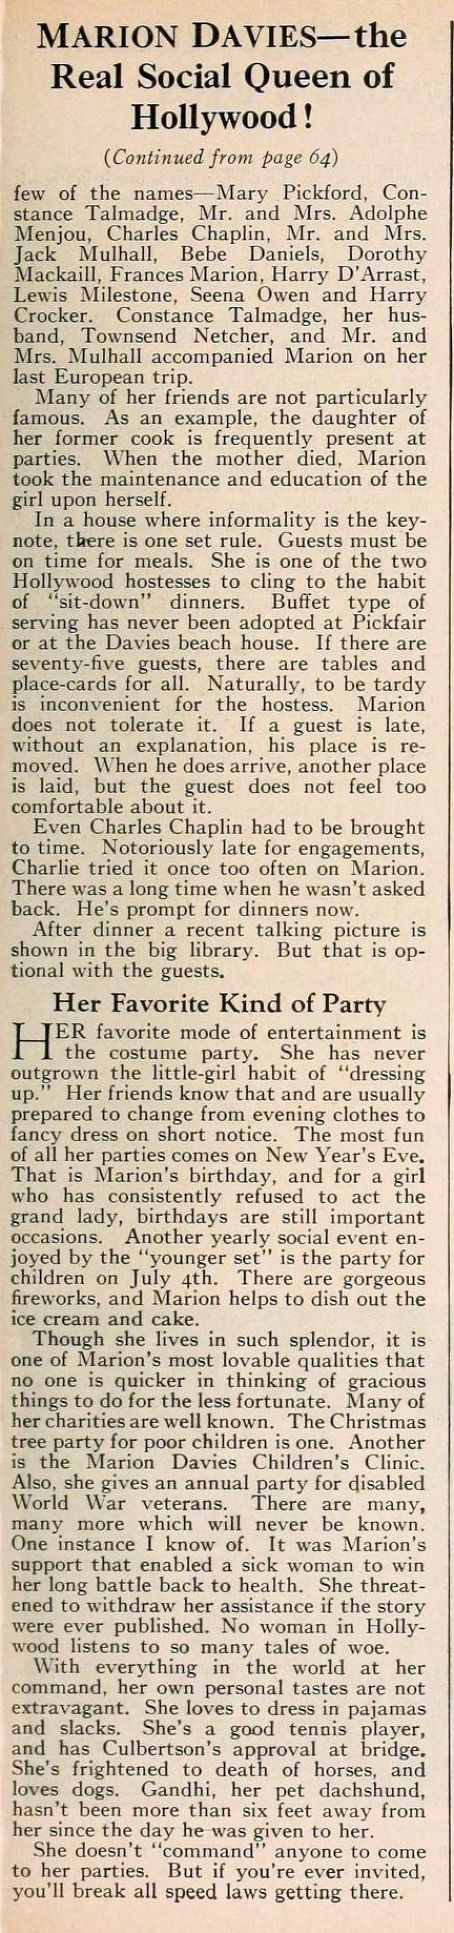 Marion Davies/ Beach House article page 3